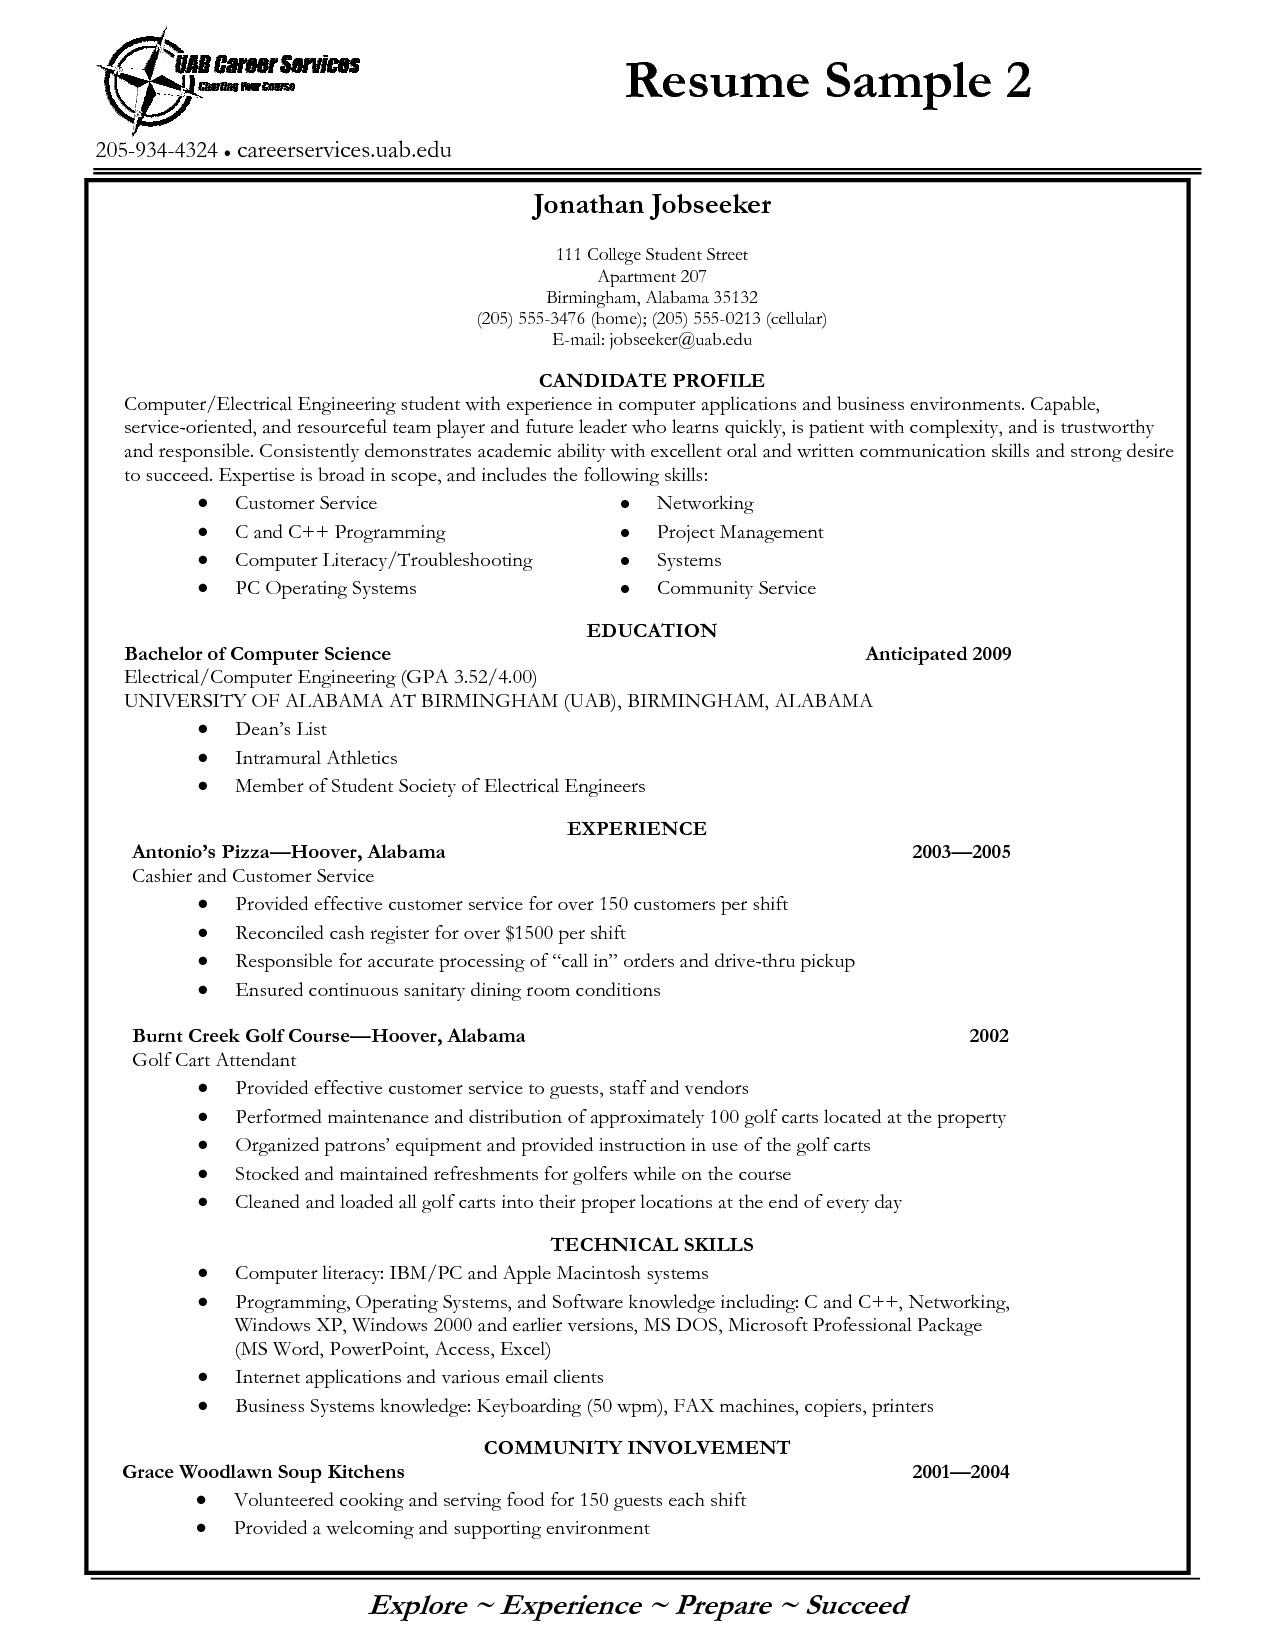 Resume Examples For College Students With No Experience Tags College Graduate Resume No Experience College Graduate Resume